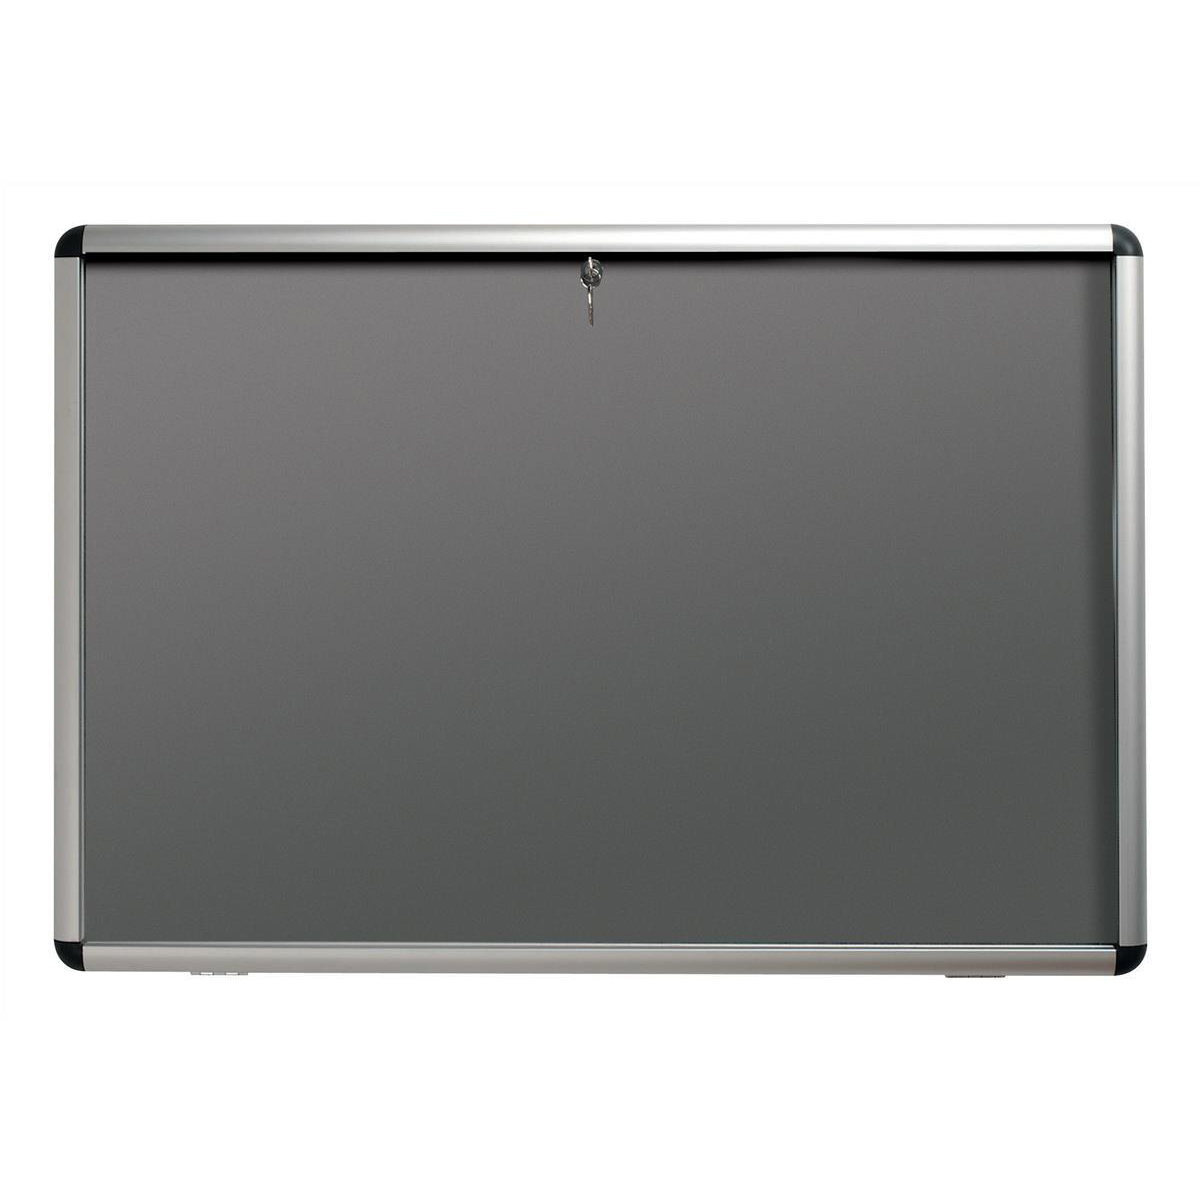 Glazed Nobo Display Cabinet Noticeboard Visual Insert Lockable A0 W1350xH1060mm Grey Ref 31333501